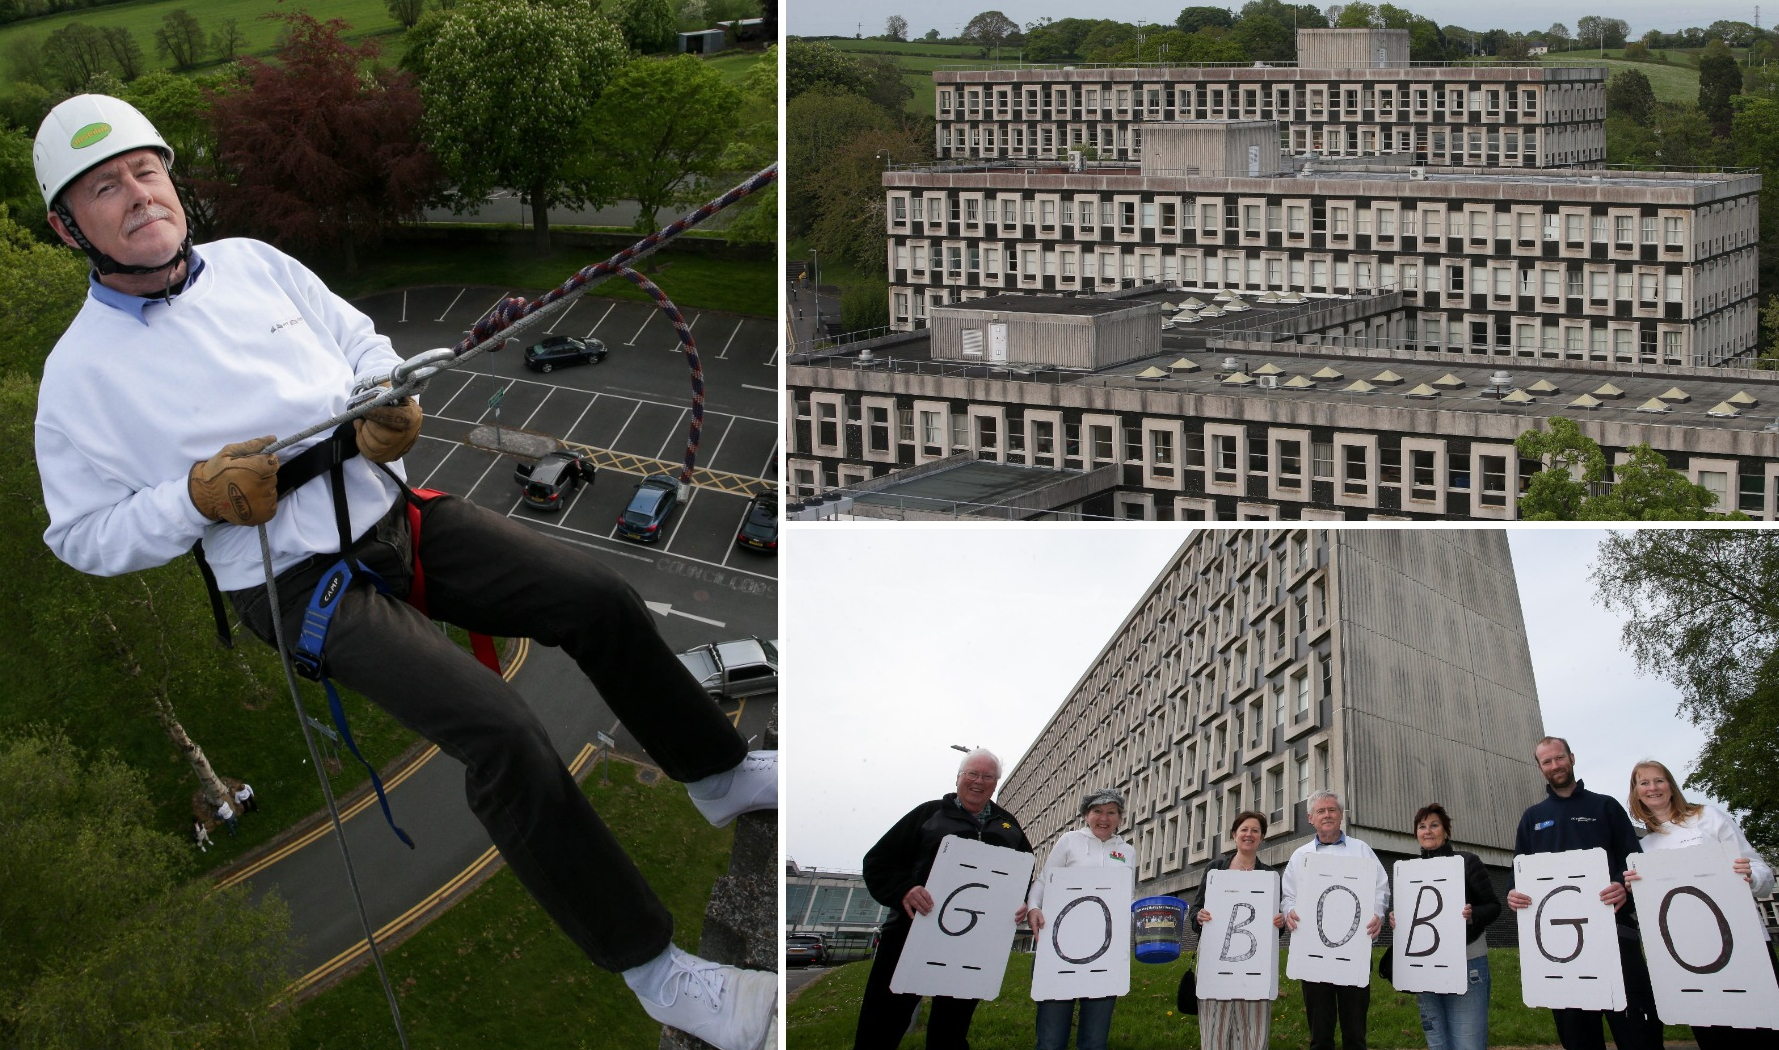 The Mayor of Mold Bob Gaffey abseiling down the side of the County Hall to raise money for his Mayor's charity